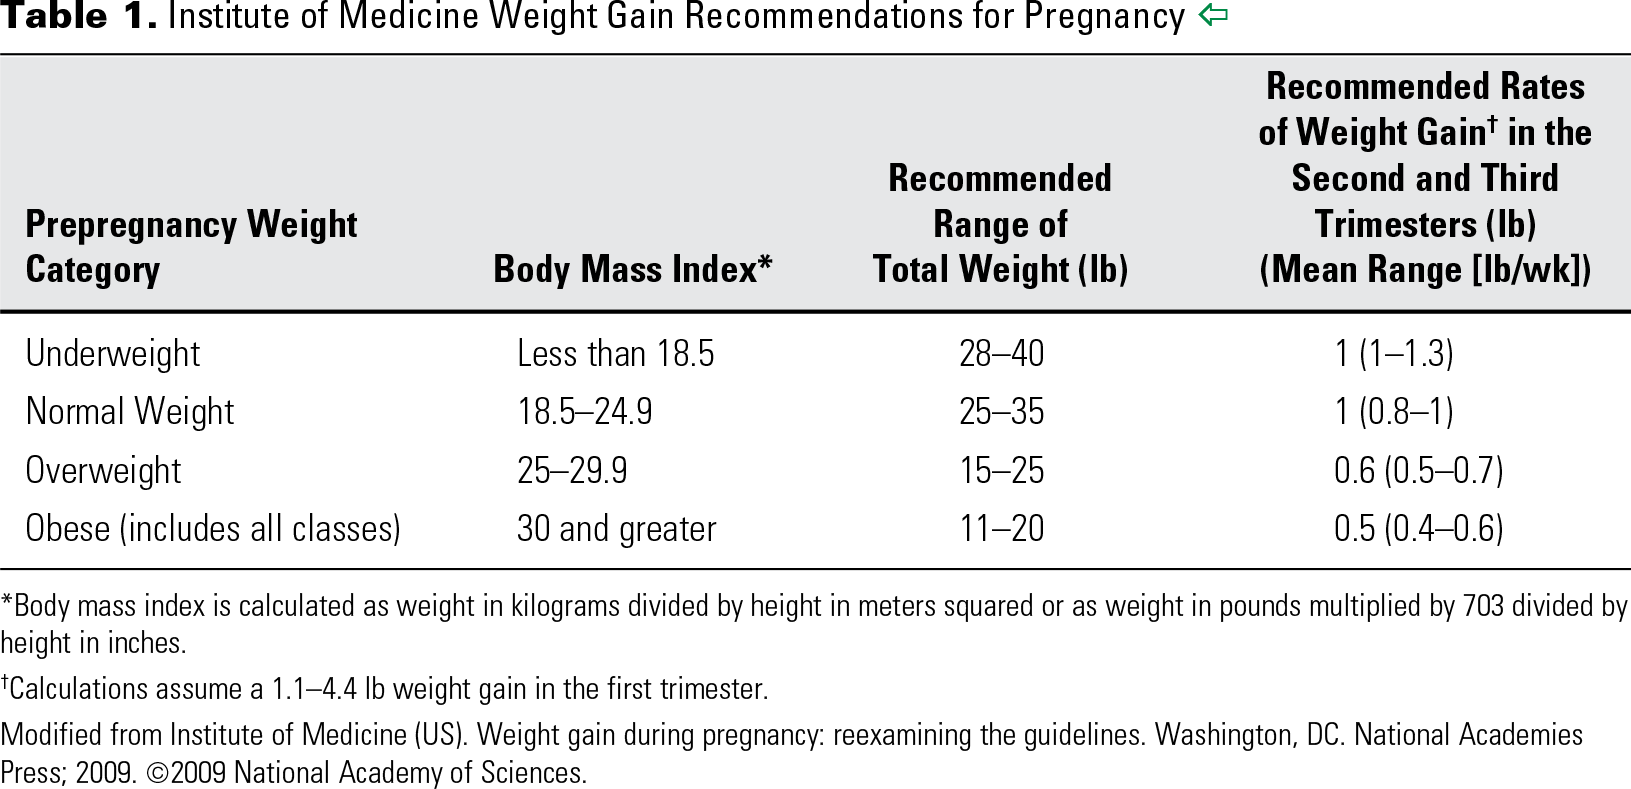 Table 1. Institute of Medicine Weight Gain Recommendations for Pregnancy